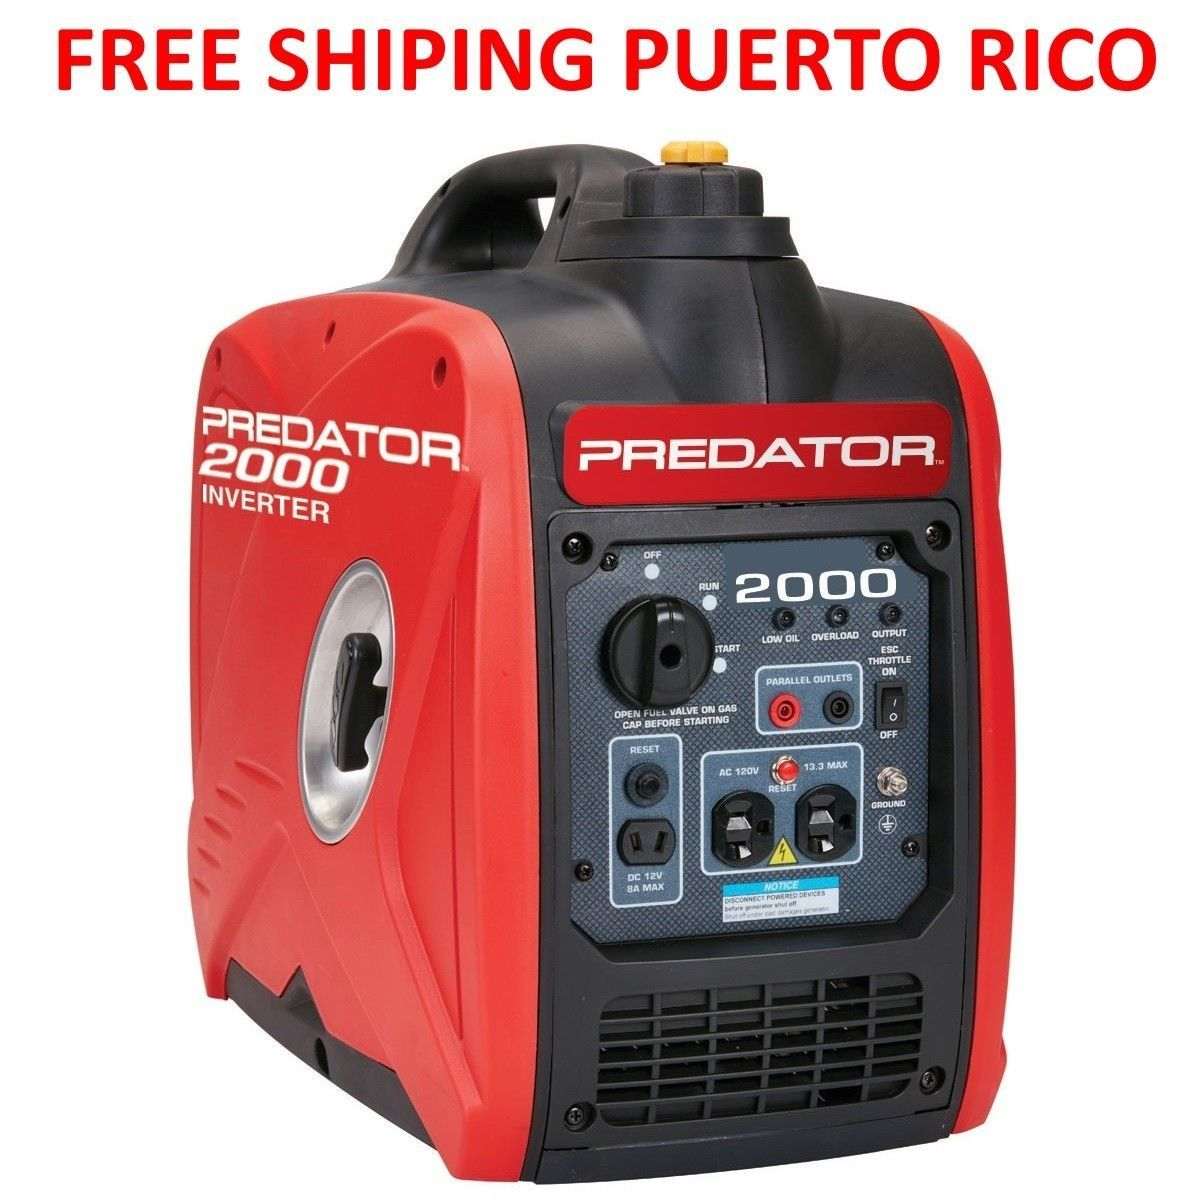 Brand New Predator 2000w Quiet Portable Generator Free Shippinga Puerto Rico Portable Inverter Generator Inverter Generator Generators For Sale